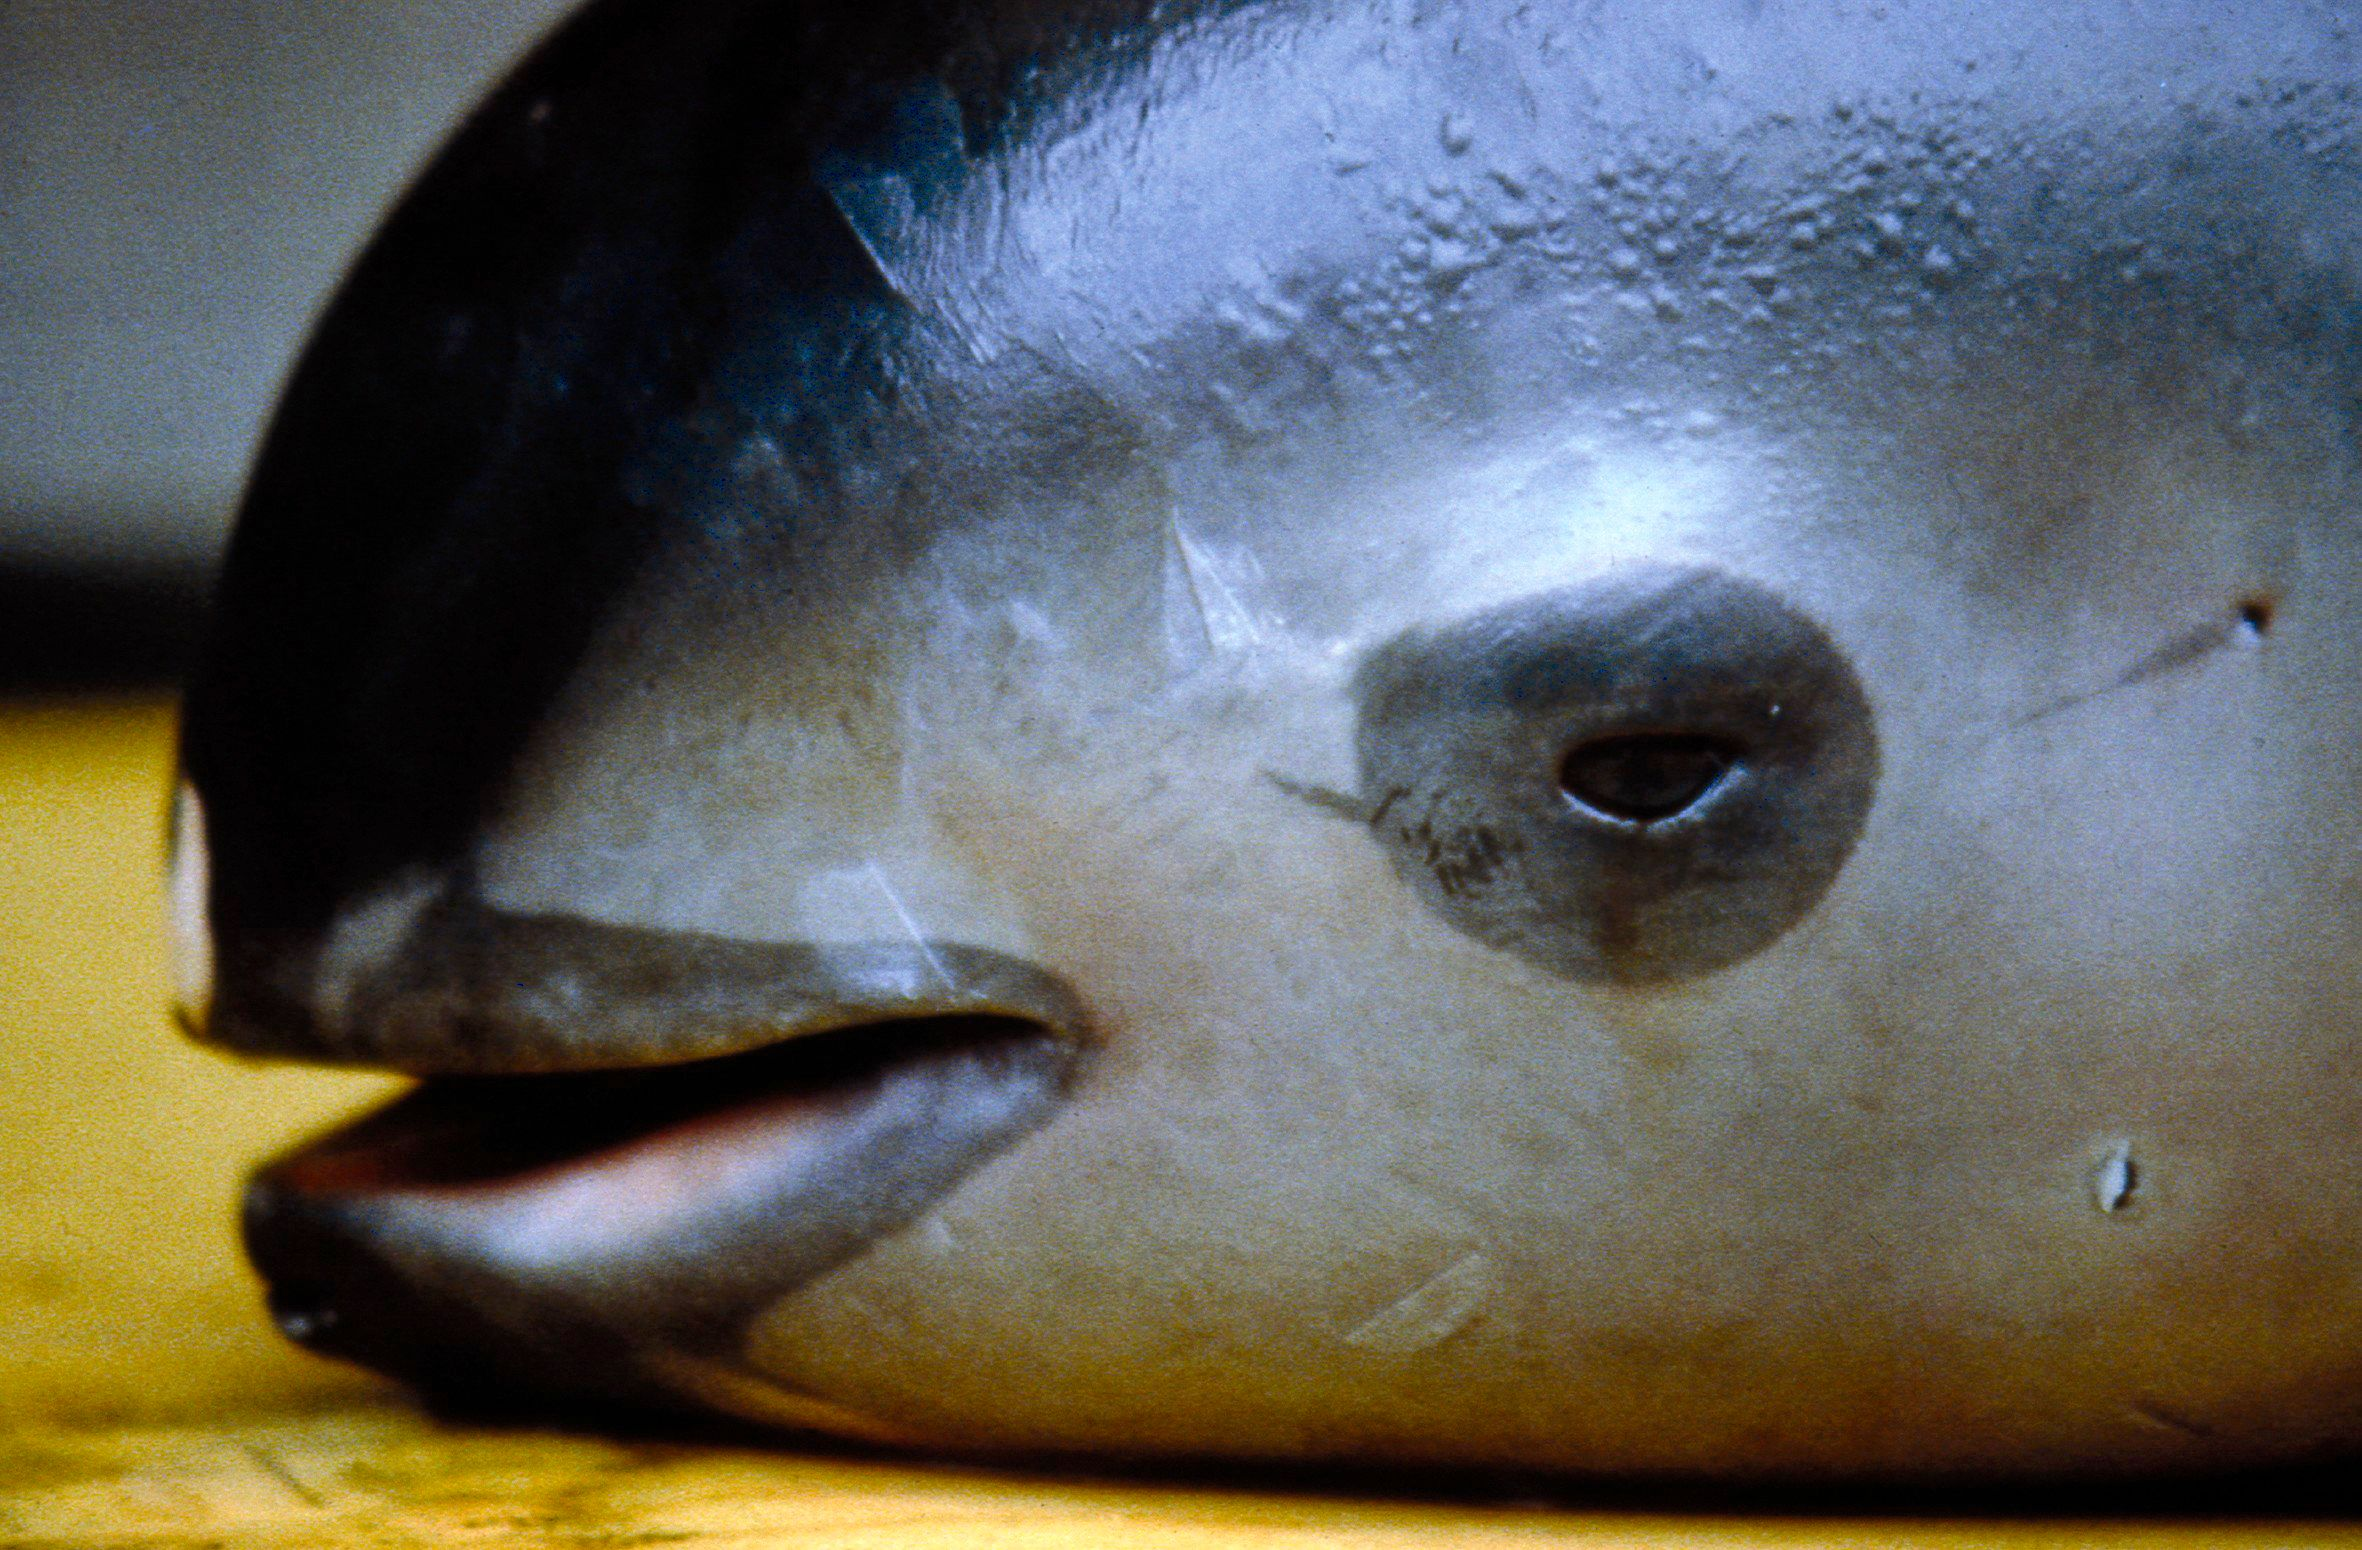 The vaquita, a tiny stubby-nosed porpoise, is found only in Mexico's Gulf of